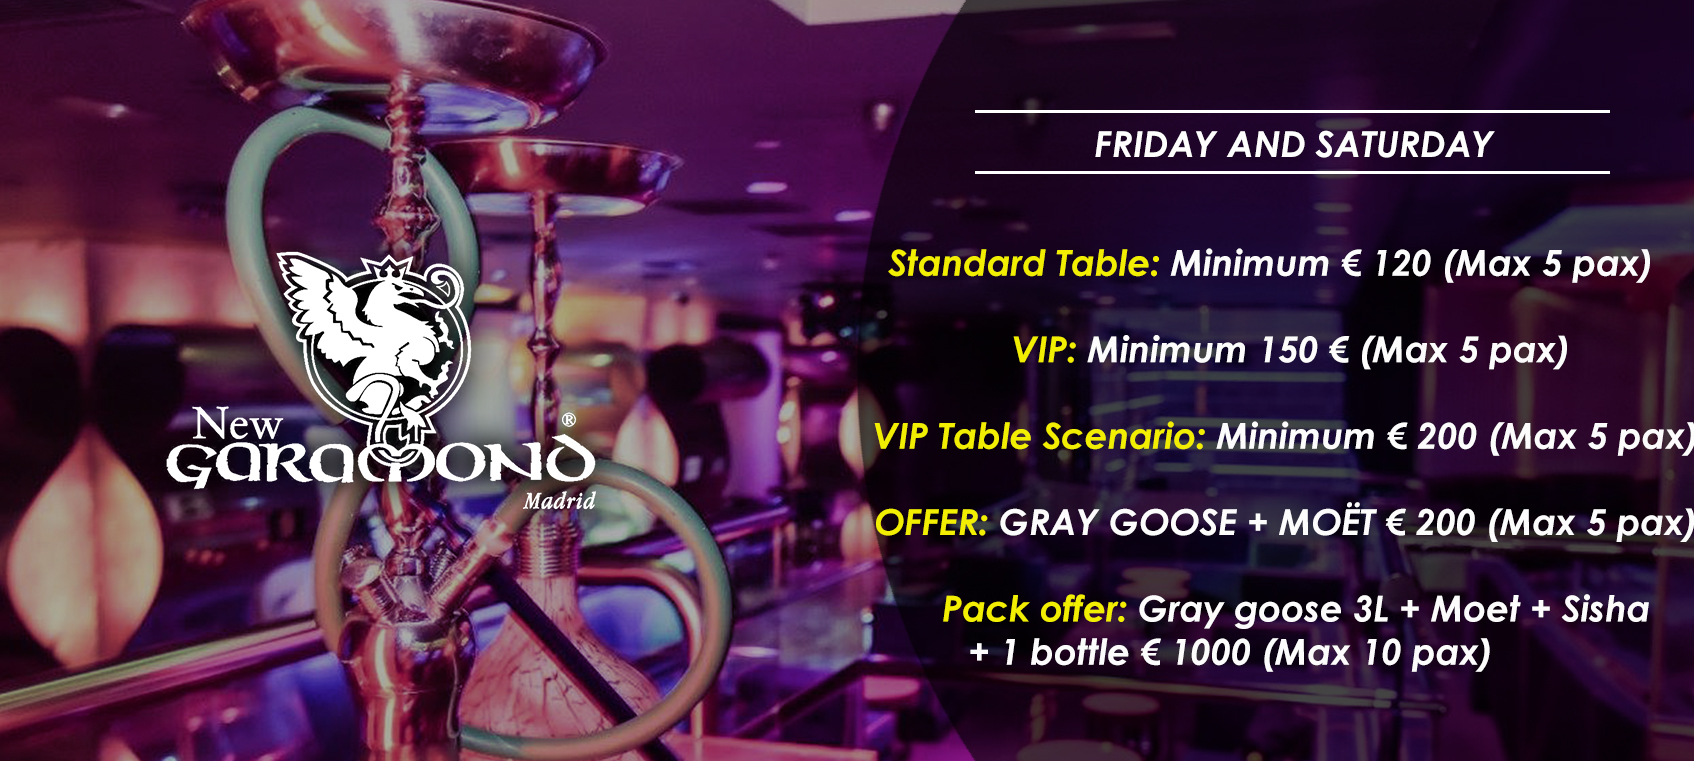 prices tables vip disco  new garamond